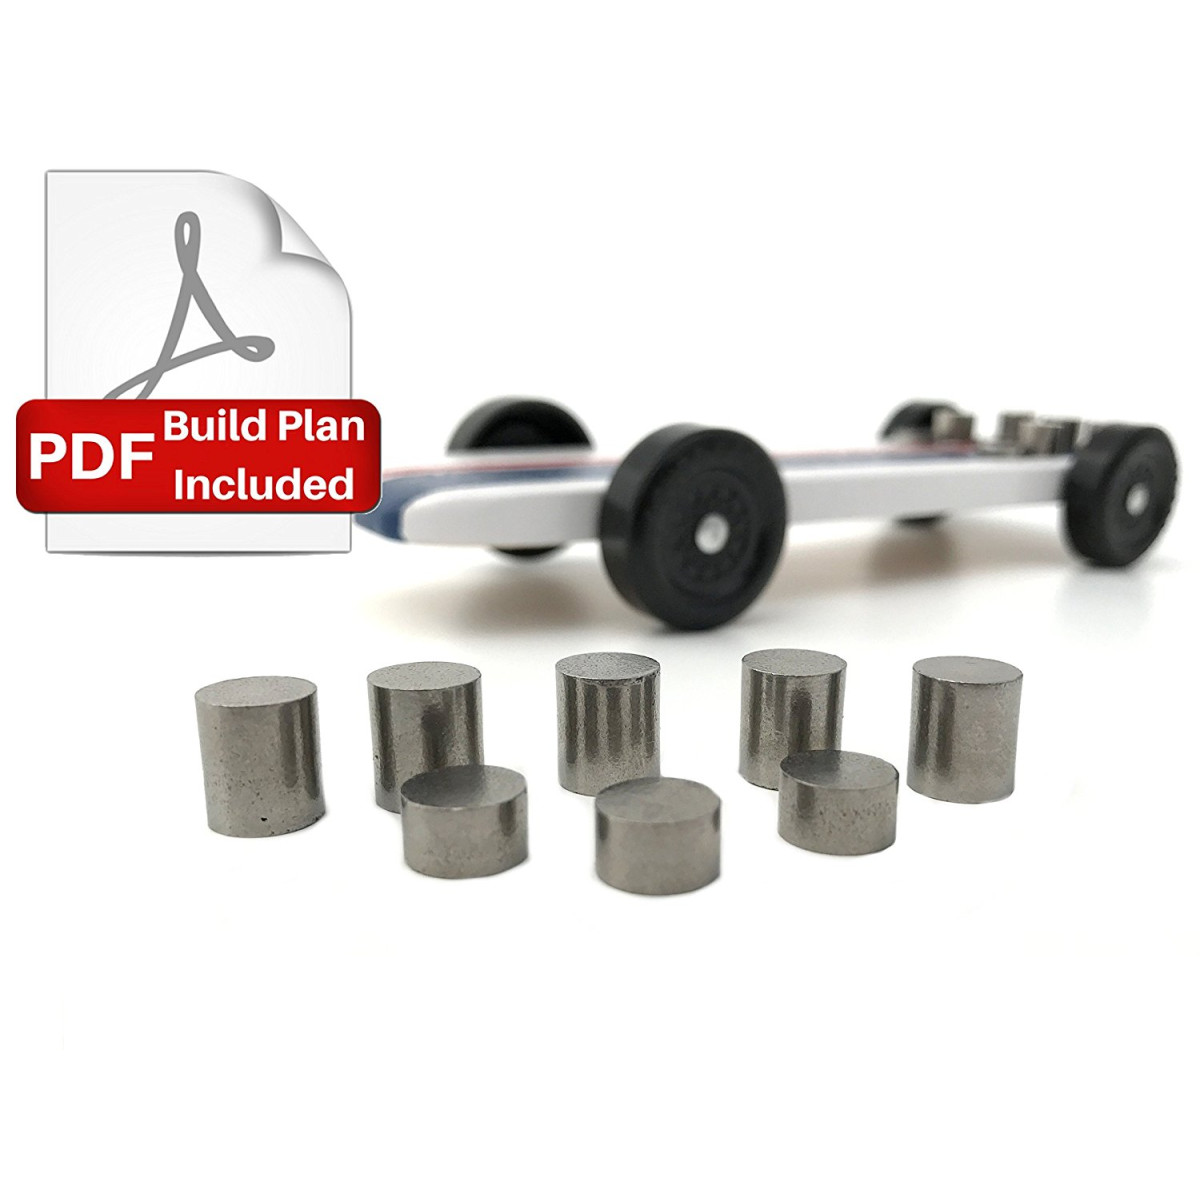 3 25 Oz Tungsten Pinewood Derby Car Weight Kit Bonus Pdf Plans Showing Optimum Car Design And Weight Placement Bring Your Car To The 5 Oz Limit